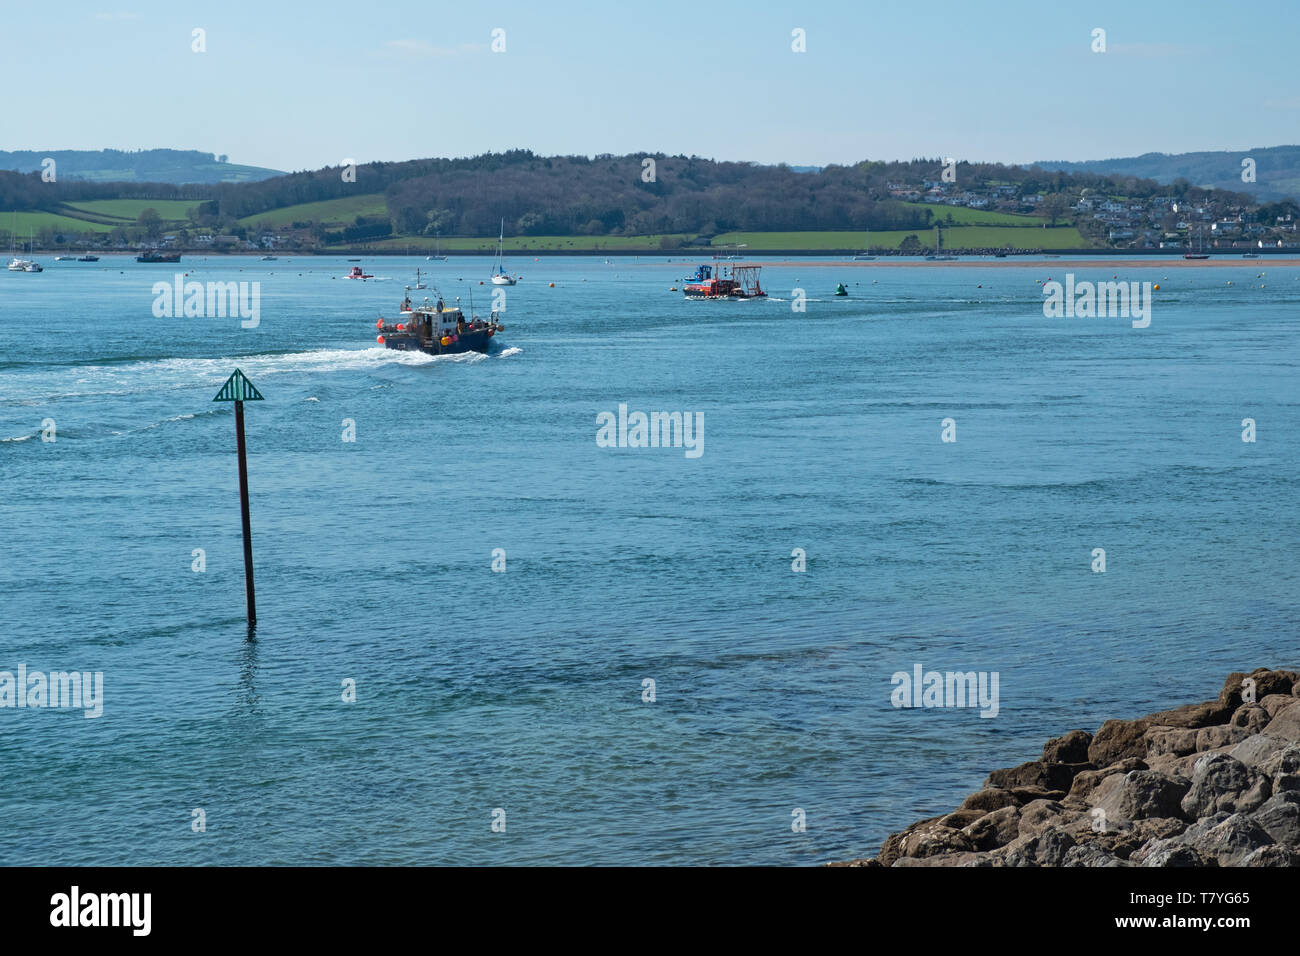 View of the river Exe estuary near Exmouth in South Devon UK - Stock Image